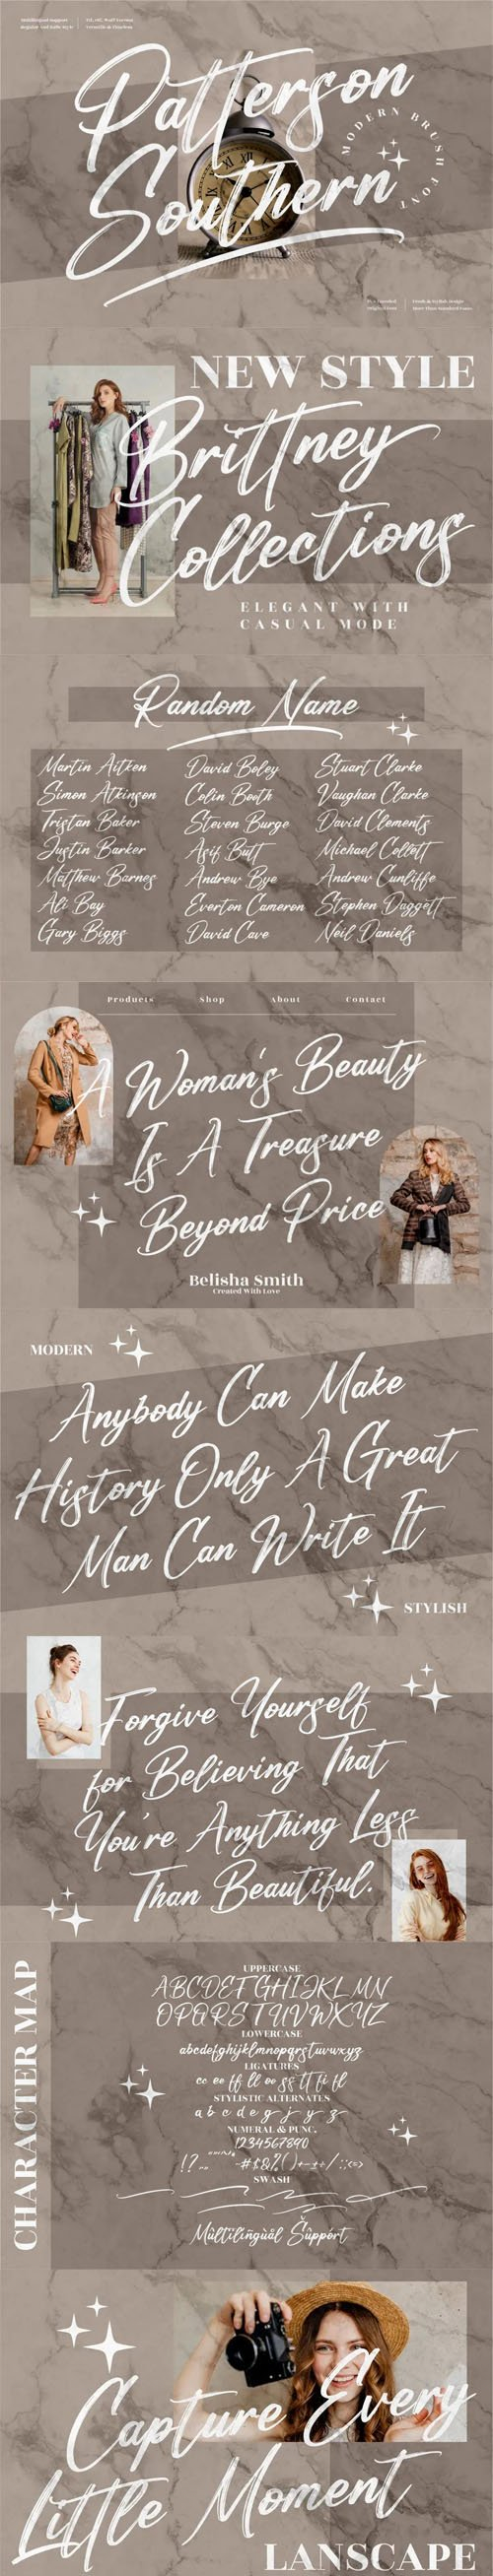 Patterson Southern - Modern Brush Font [2-Weights]